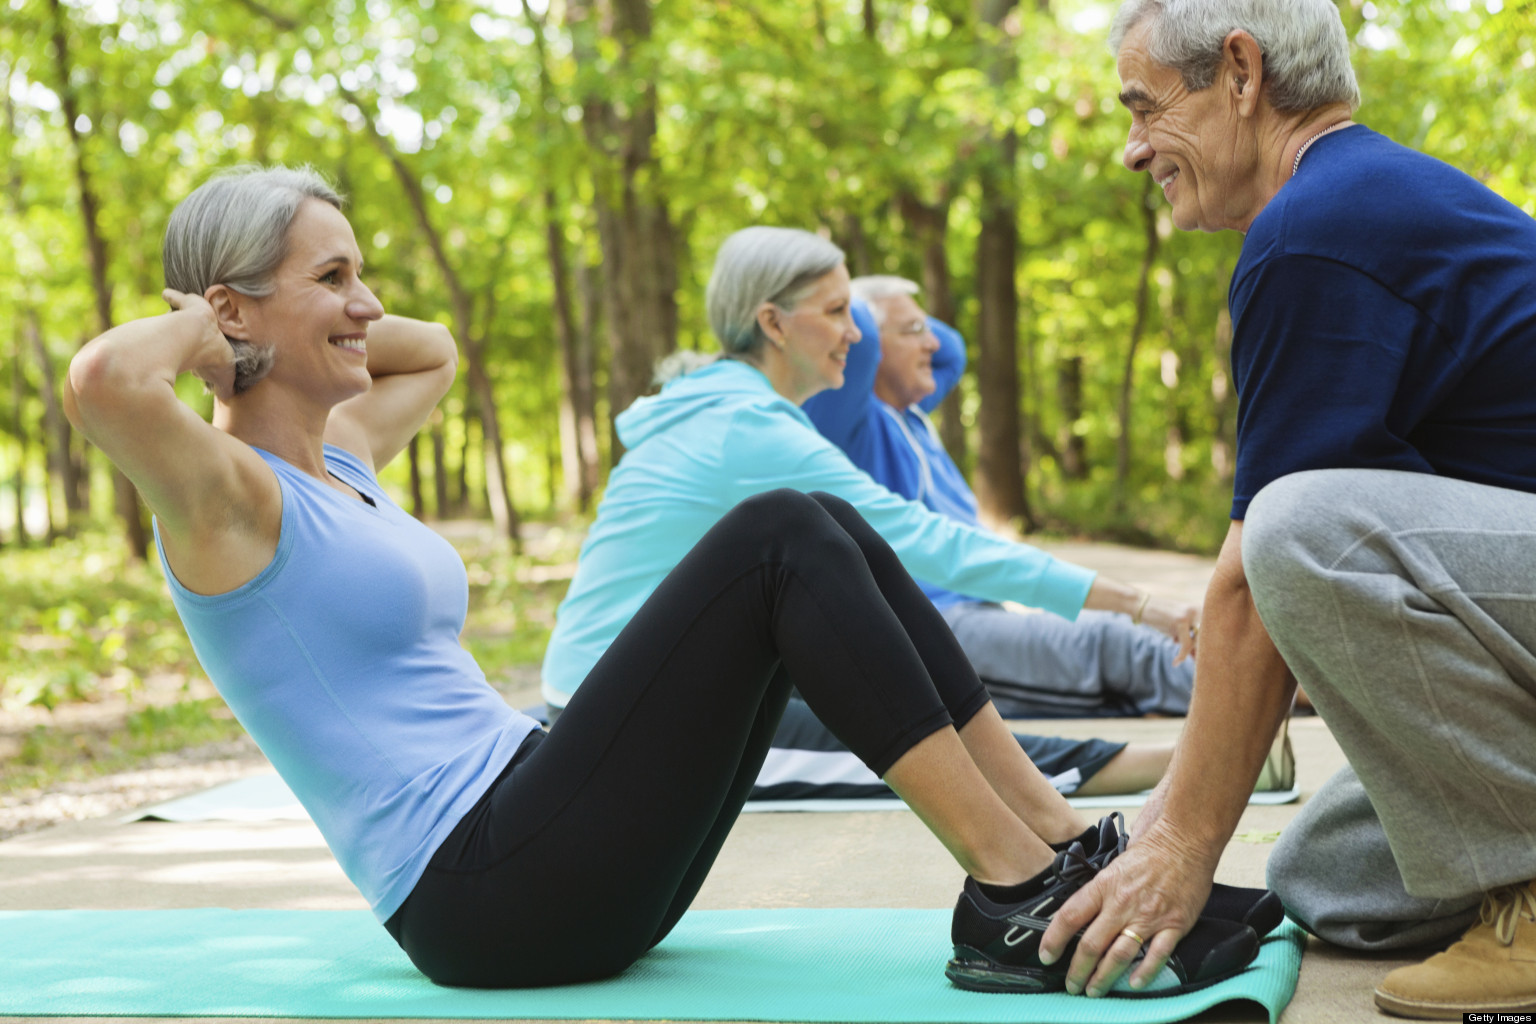 Club 50 fitness and wellness for mature adults